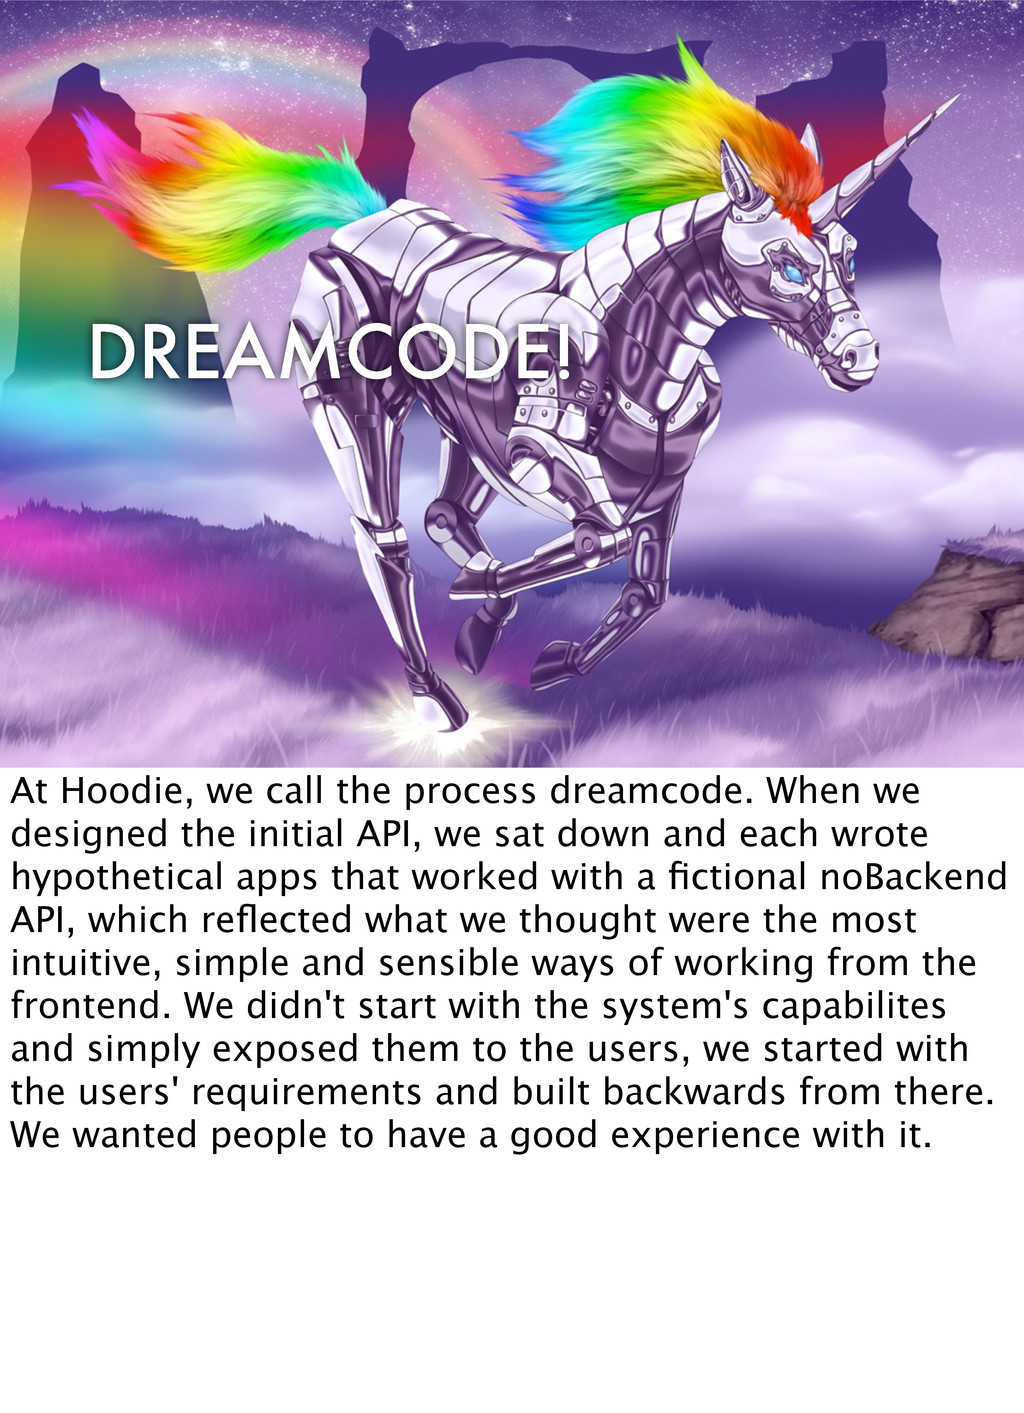 DREAMCODE! At Hoodie, we call the process dream...